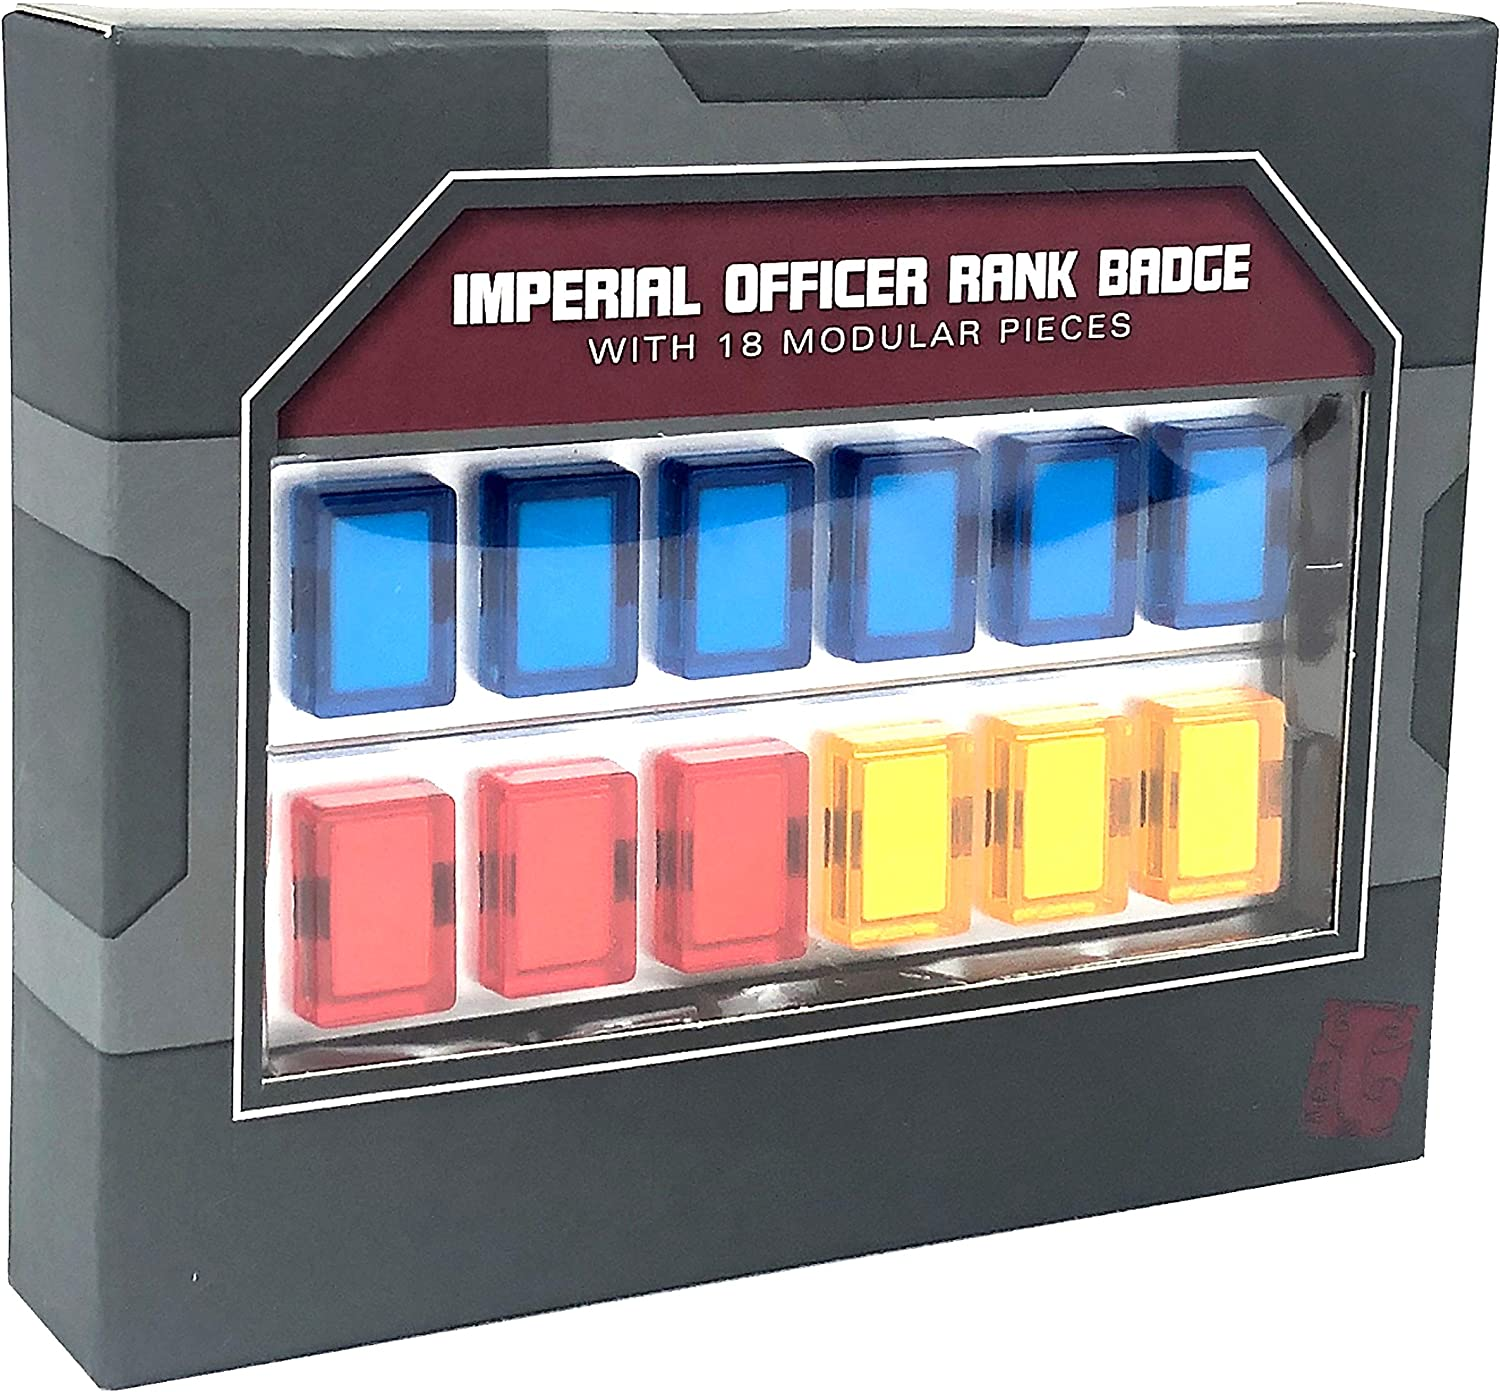 Galaxy's Edge Star Wars Empire Imperial Officer Rank Badge Set with 18 Modular Pieces